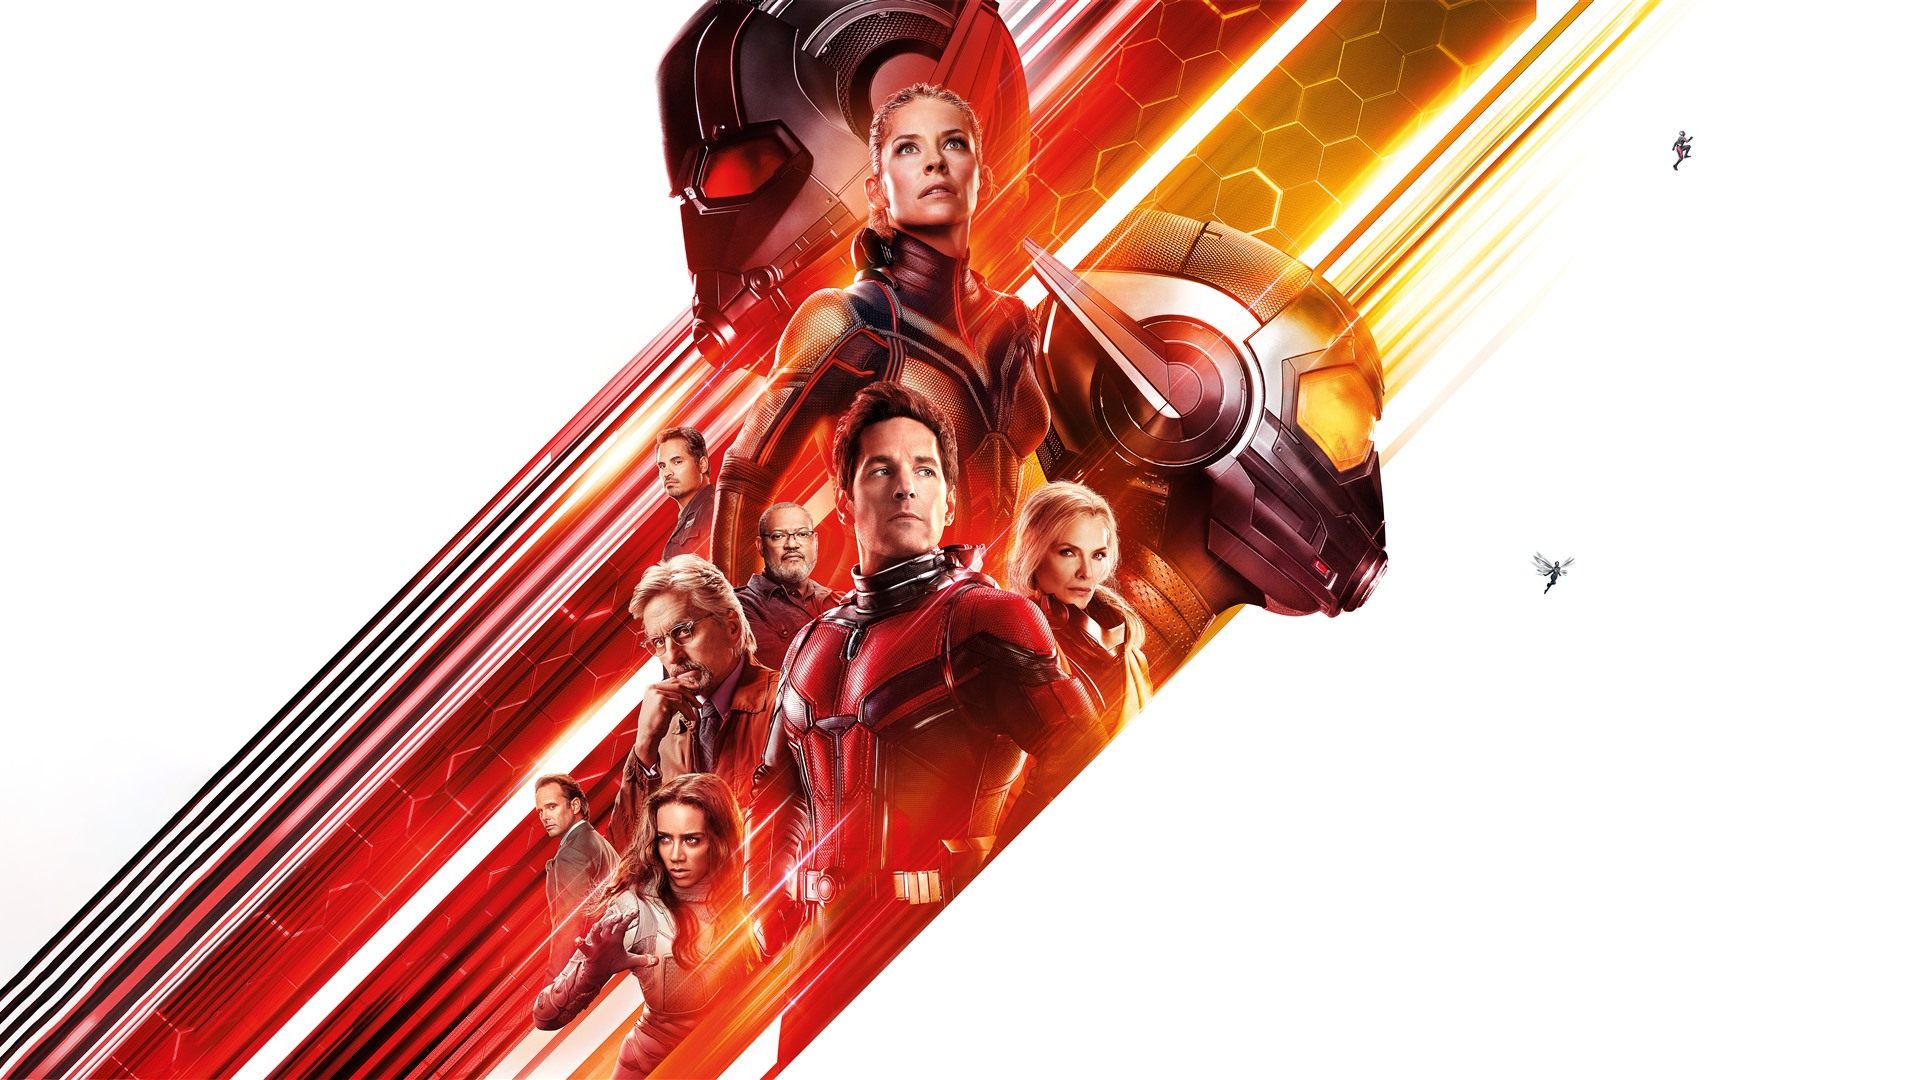 Wallpaper Ant Man And The Wasp 8k Movie 7680x4320 Uhd 8k